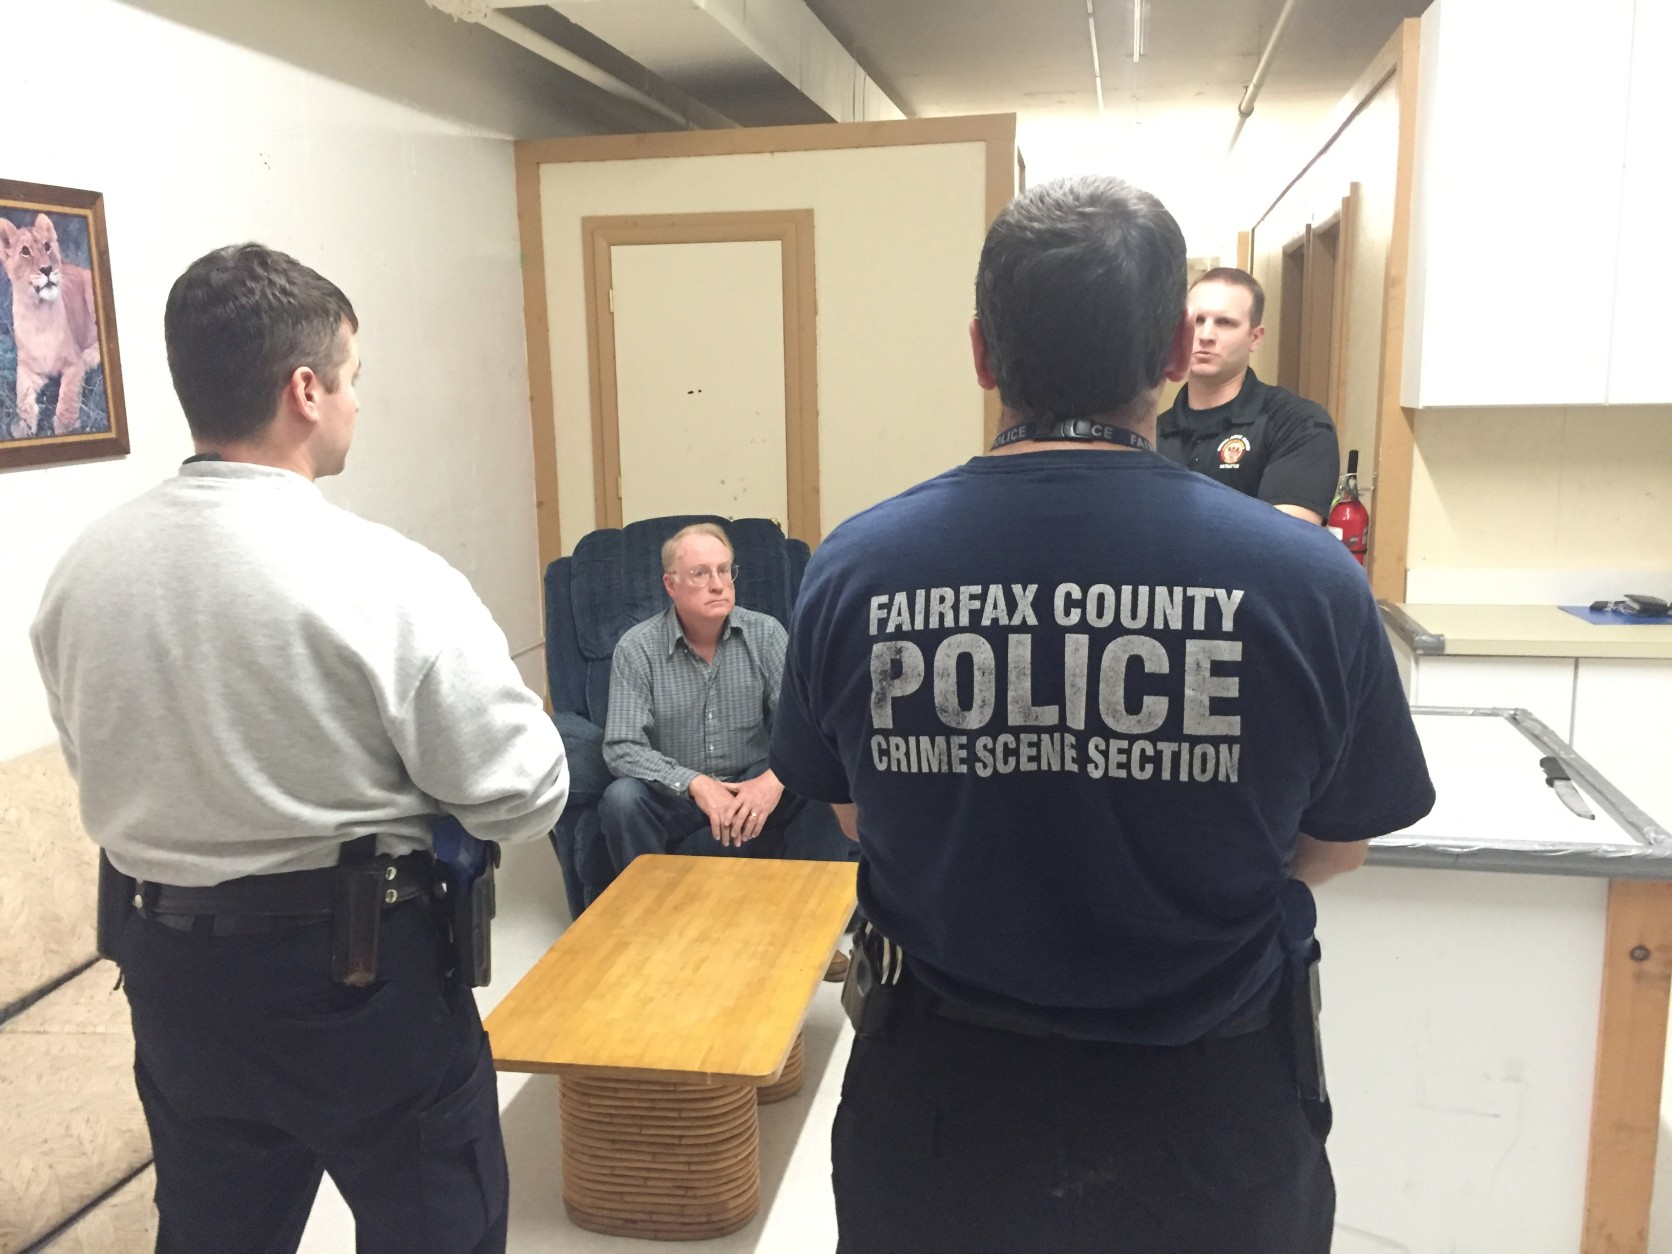 Years after the death of John Geer, the Fairfax County department is learning how to de-escalate situations before they spiral out of control. (WTOP/Max Smith)